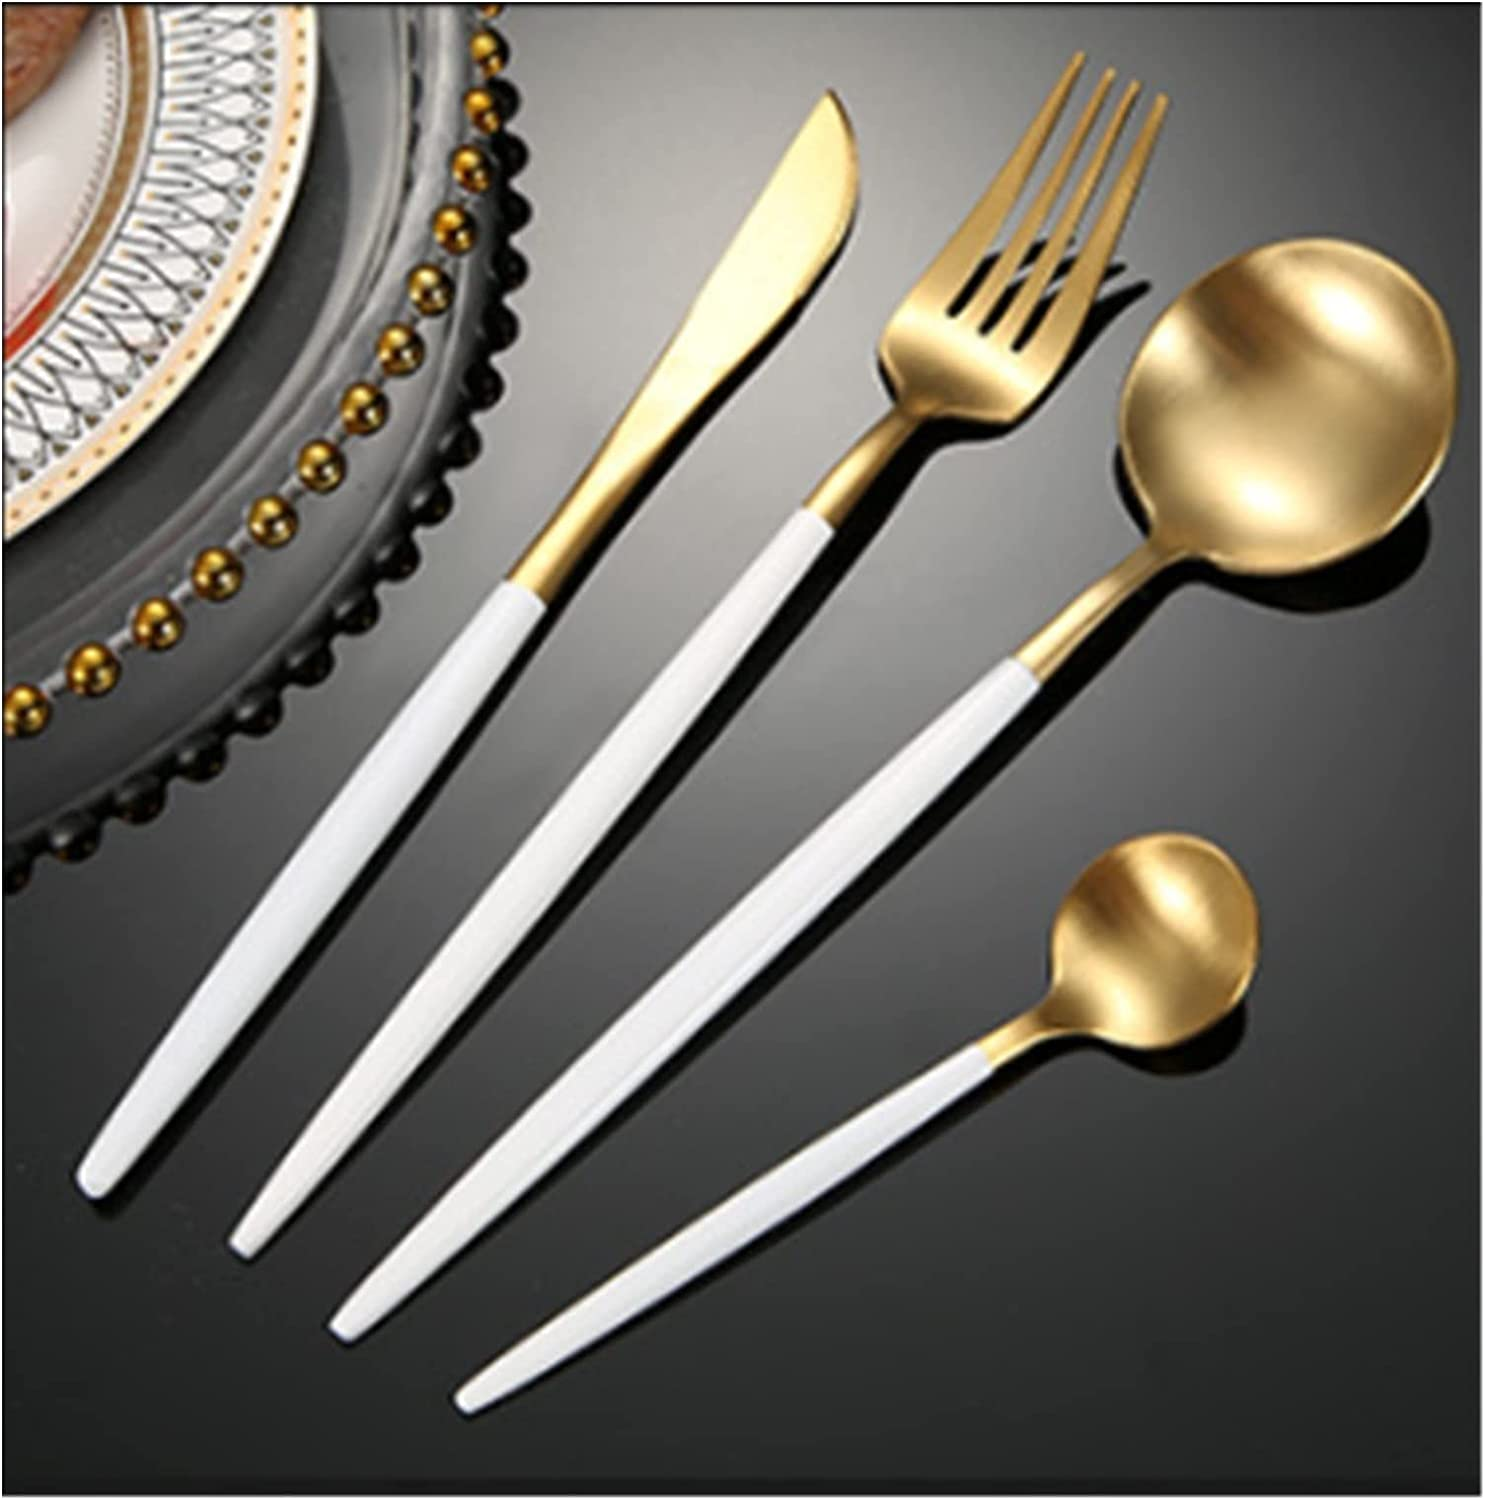 Silverware Set 4-Piece Stainless Flatware Ranking TOP17 Incl Steel Cutlery Gifts